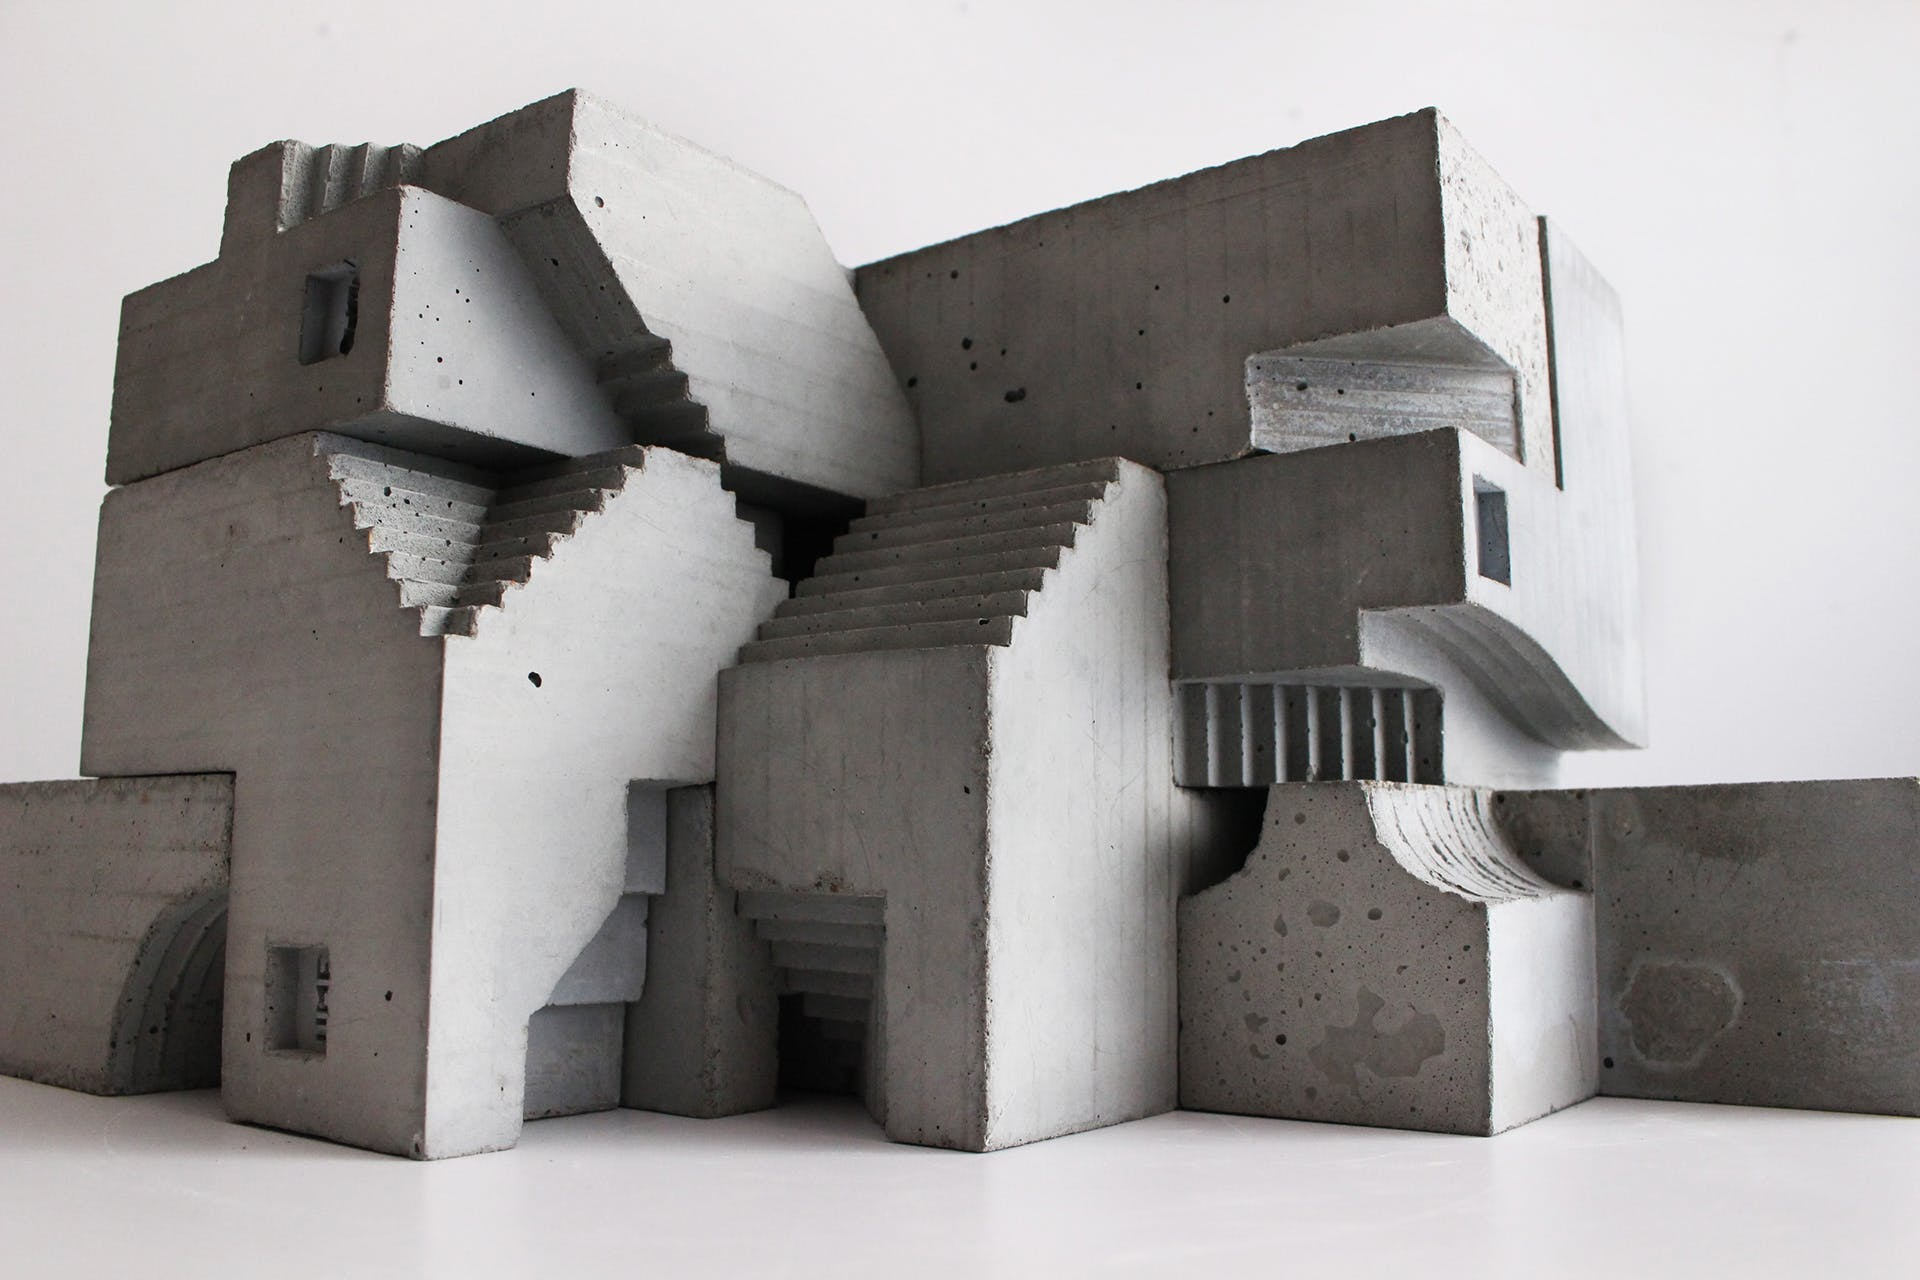 Brutalist sculptures by David Umemoto   News   Archinect